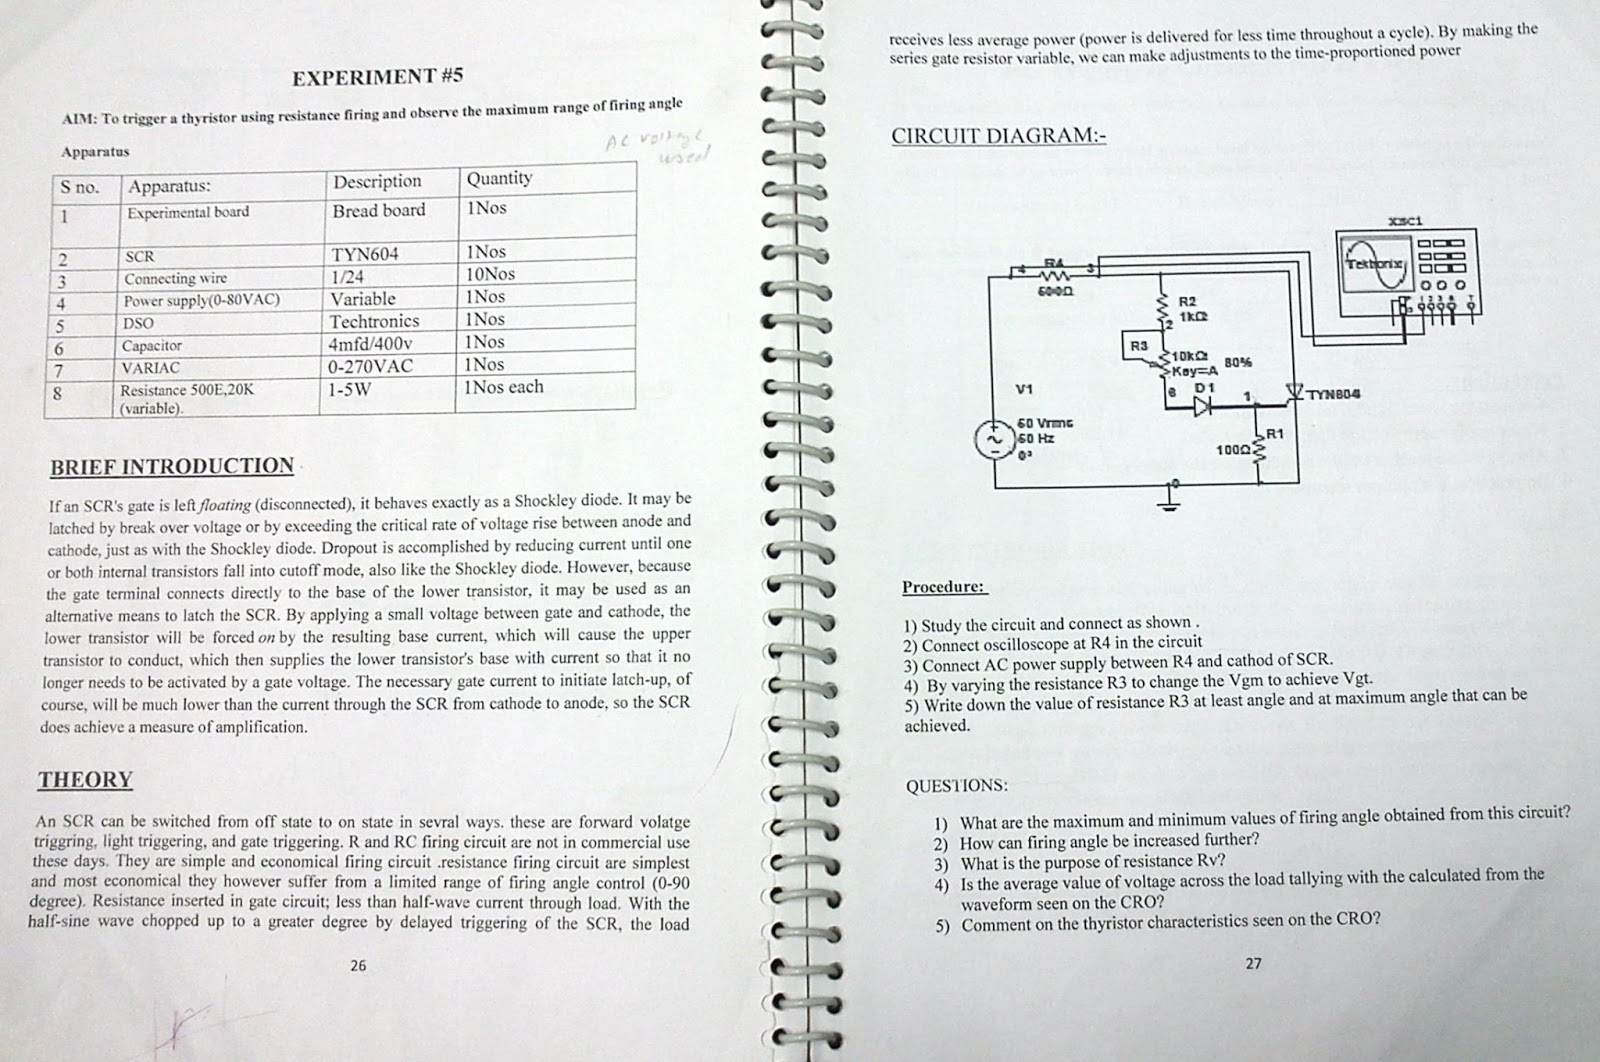 Reynolds and reynolds user guide